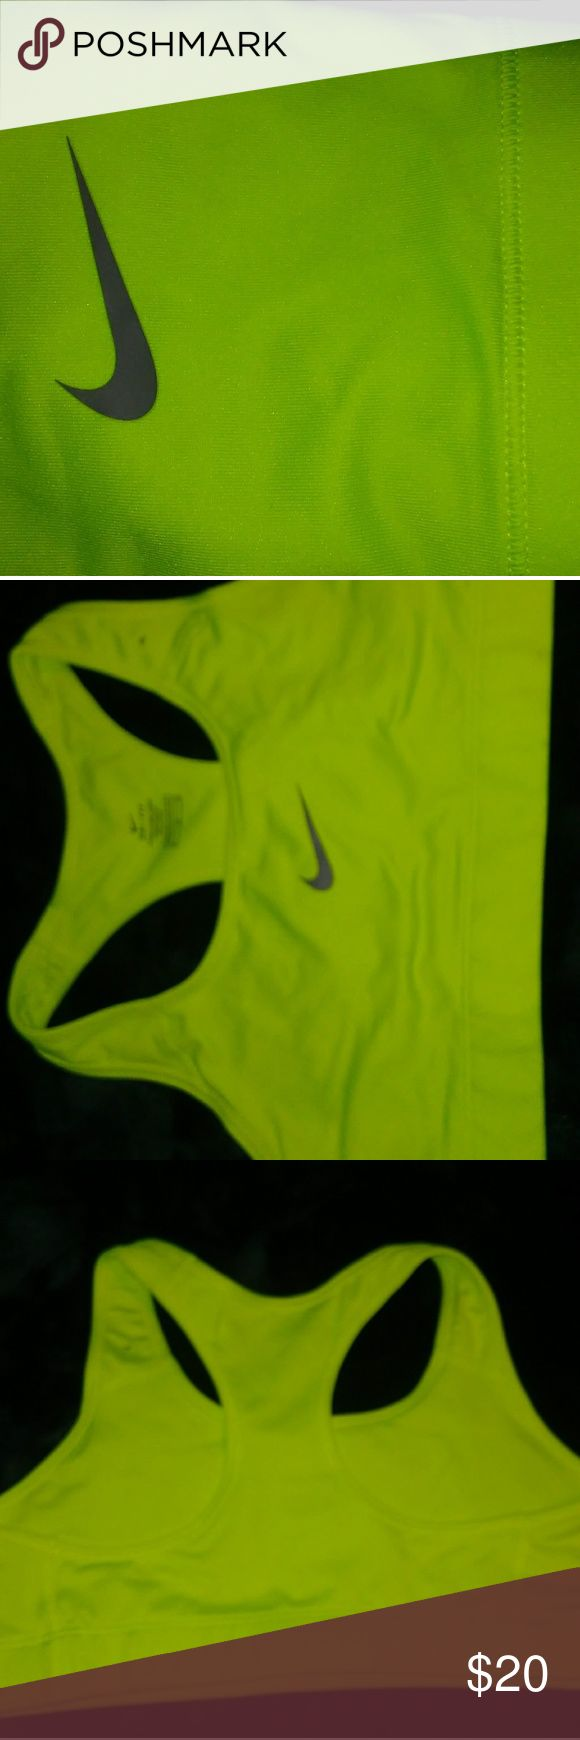 Nike Sports Bra Neon Green Sports Bra New But The Tags Fell Off See Pic Above Nike Intimates & Sleepwear Bras